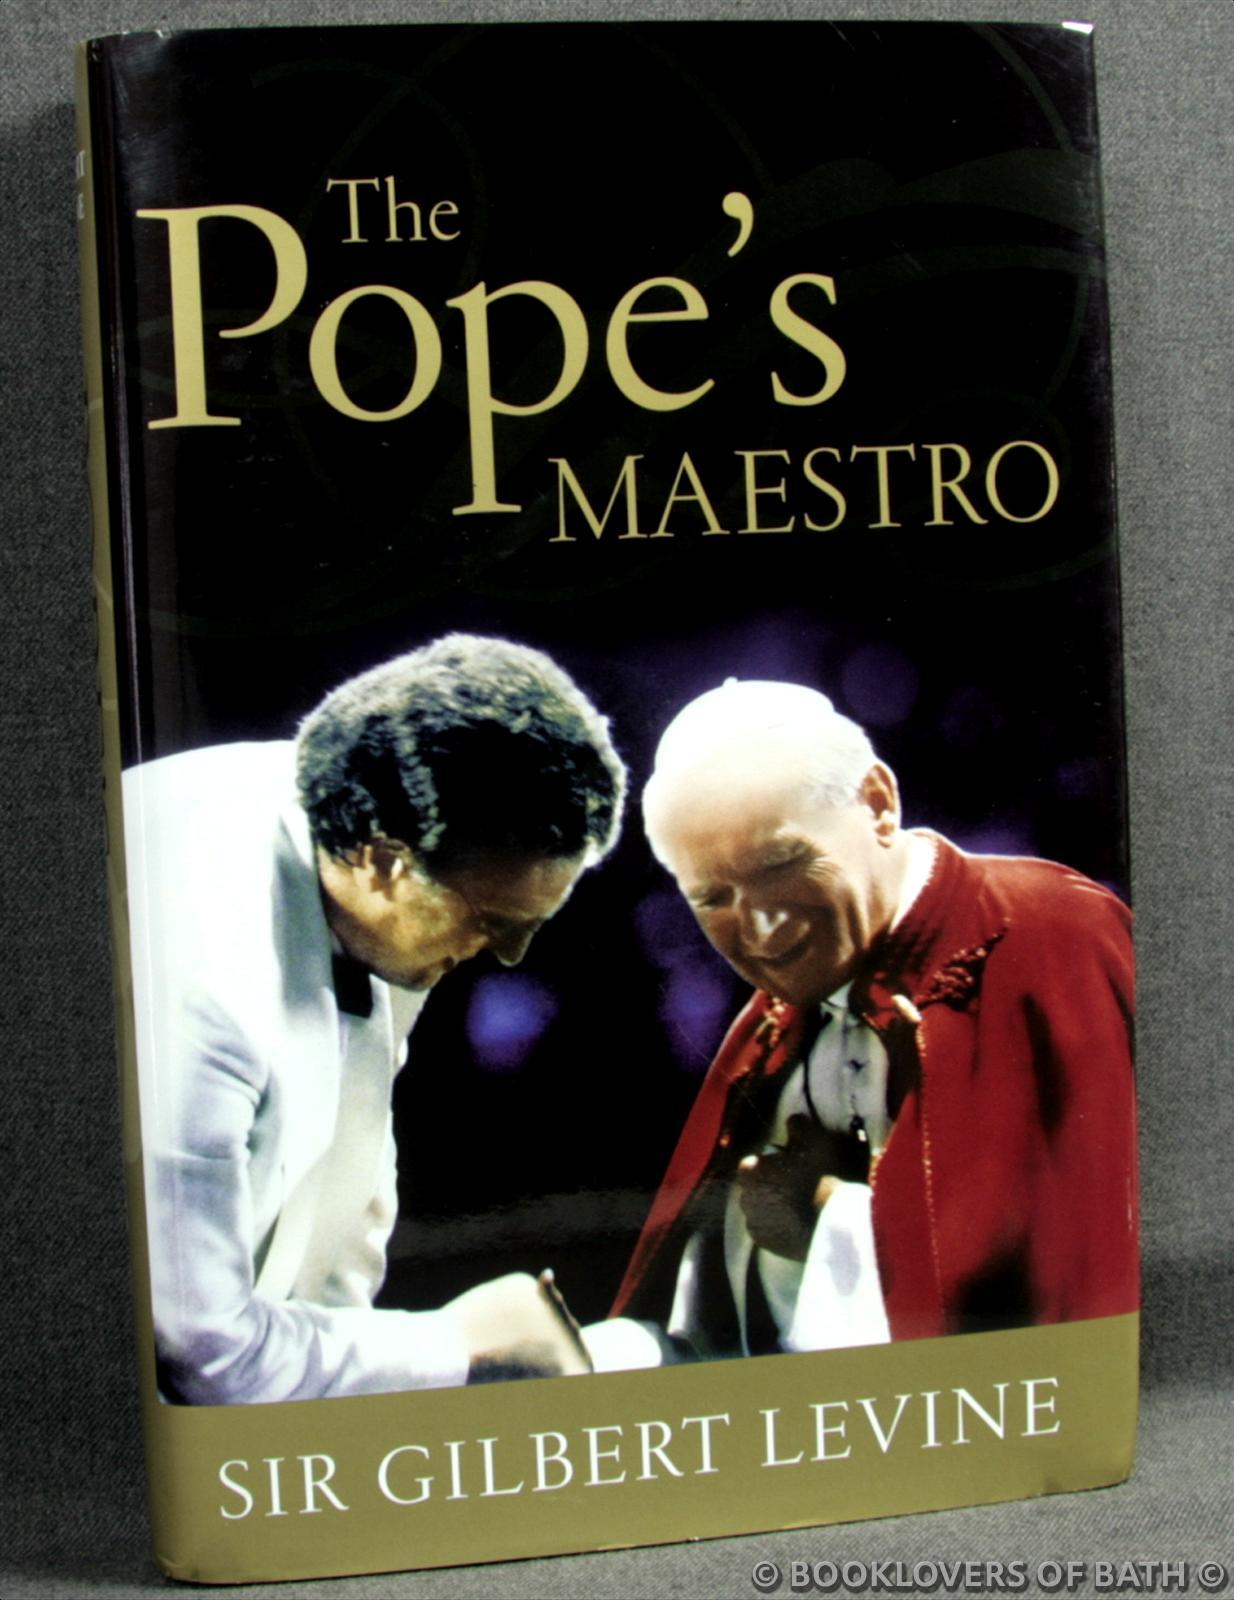 The Pope's Maestro - Sir Gilbert Levine